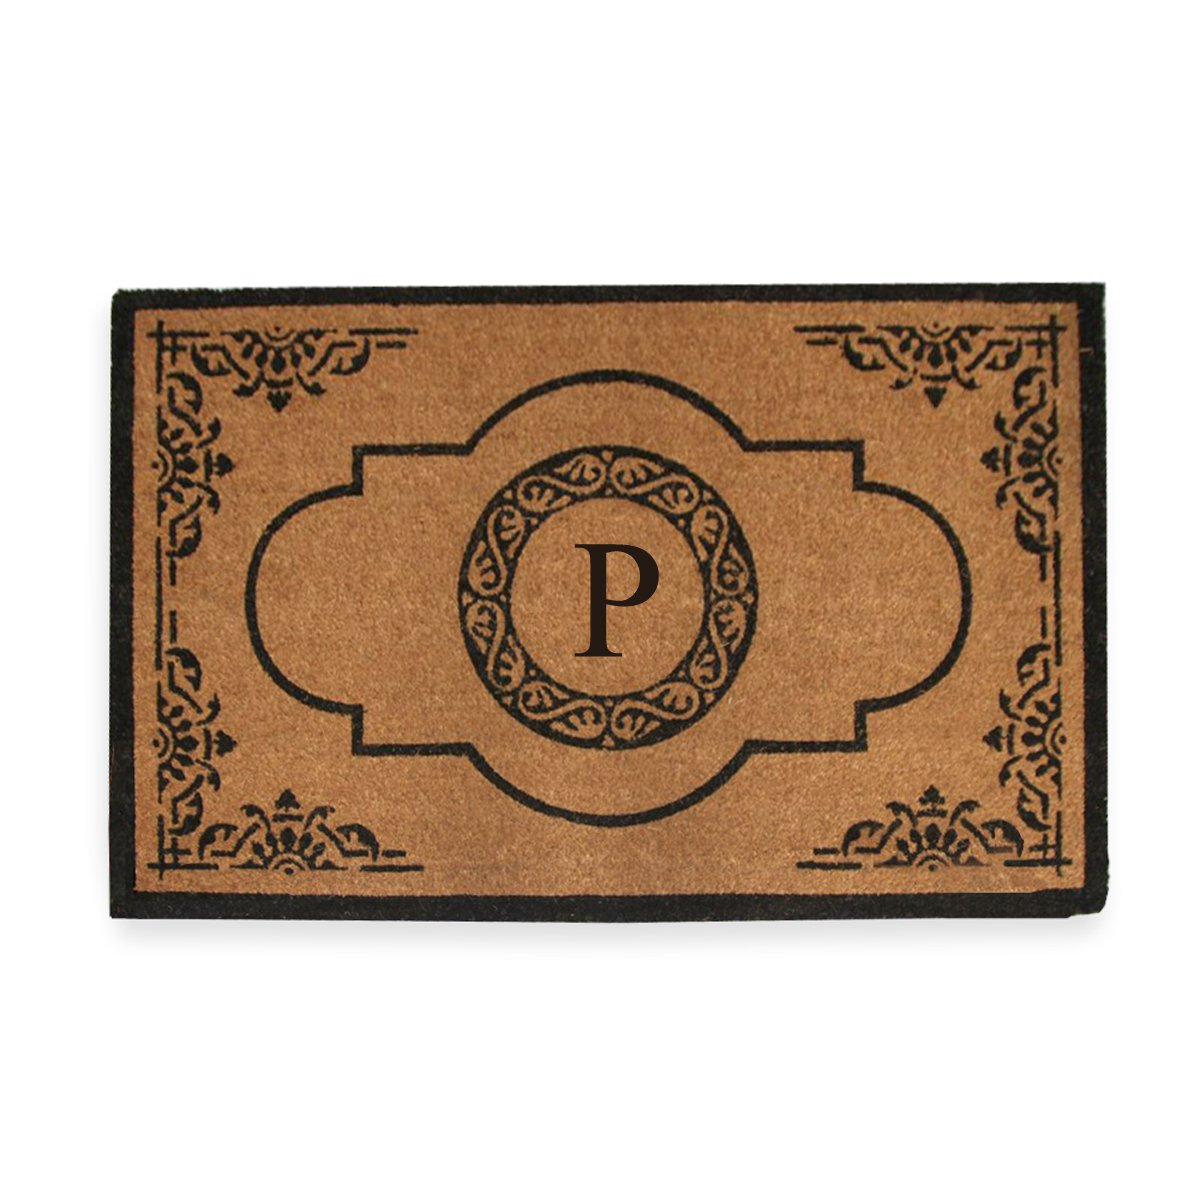 A1 Home Collections First Impression Hand Crafted Abrilina Entry Coir Monogrammed Double Doormat, 72'' L x 36'' W, X-Large by A1 Home Collections